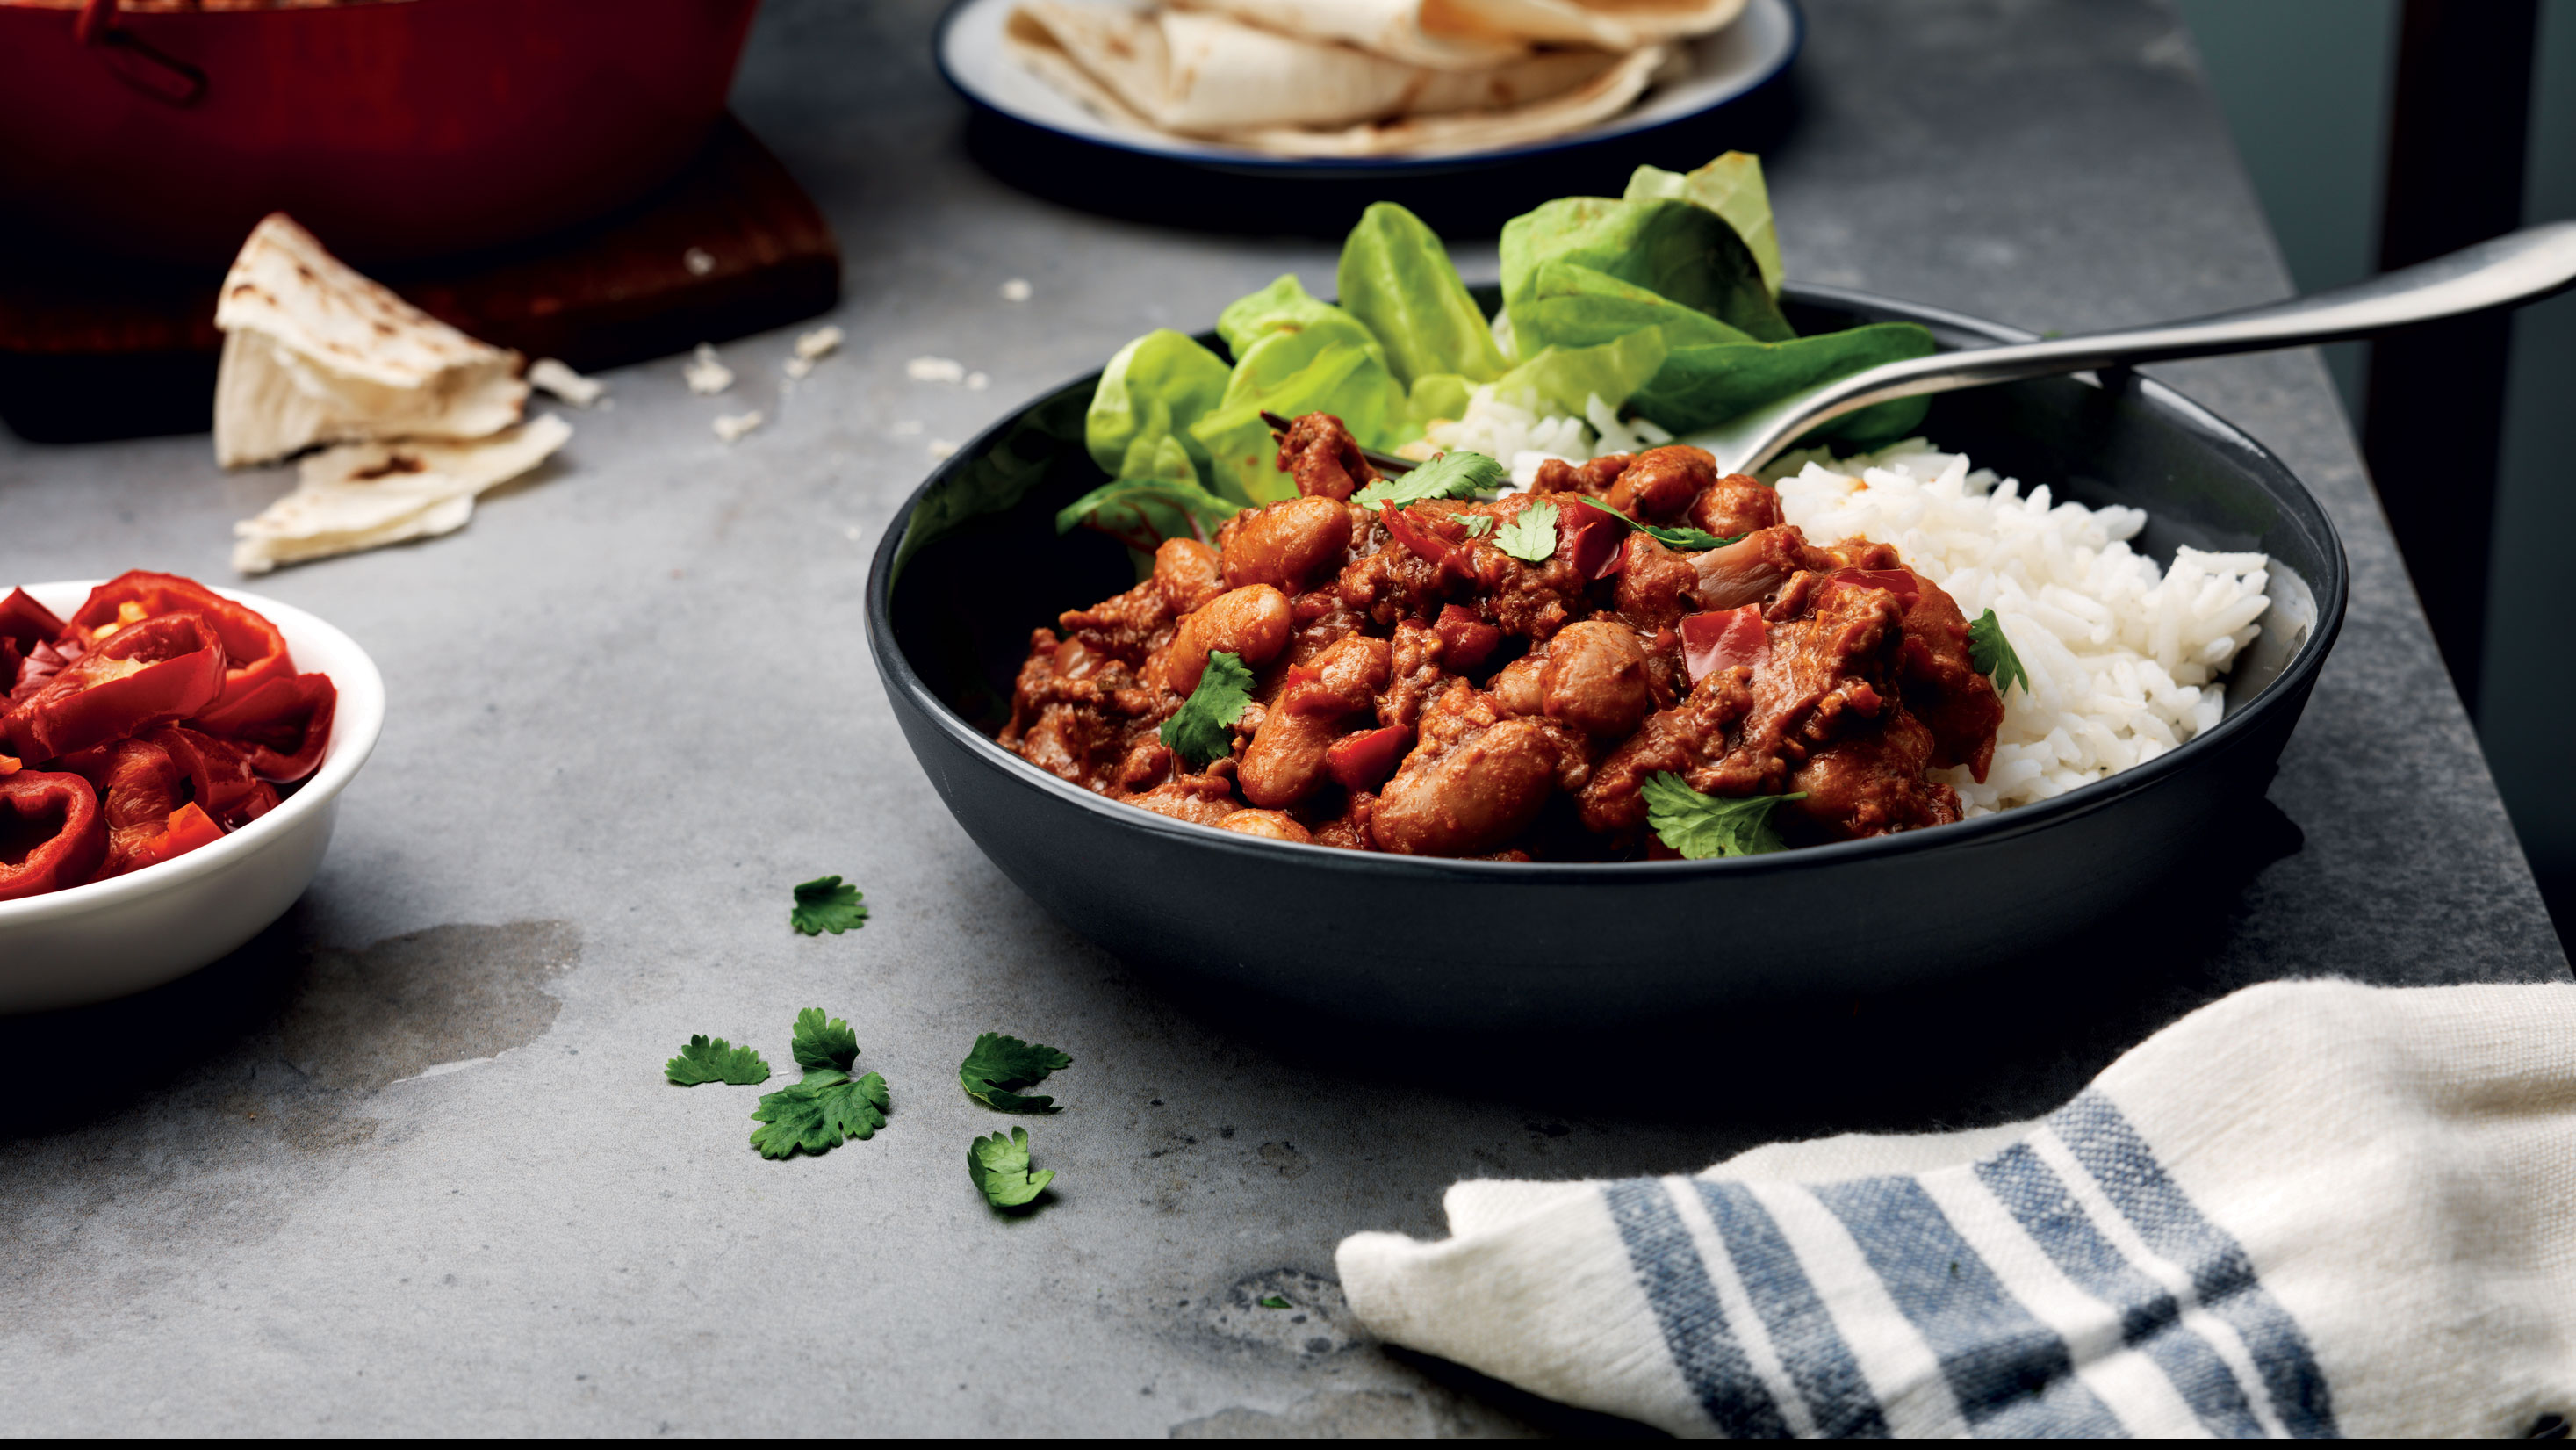 Chilli Con Carne with Smoked Paprika & Chipotle Seasoning Sauce